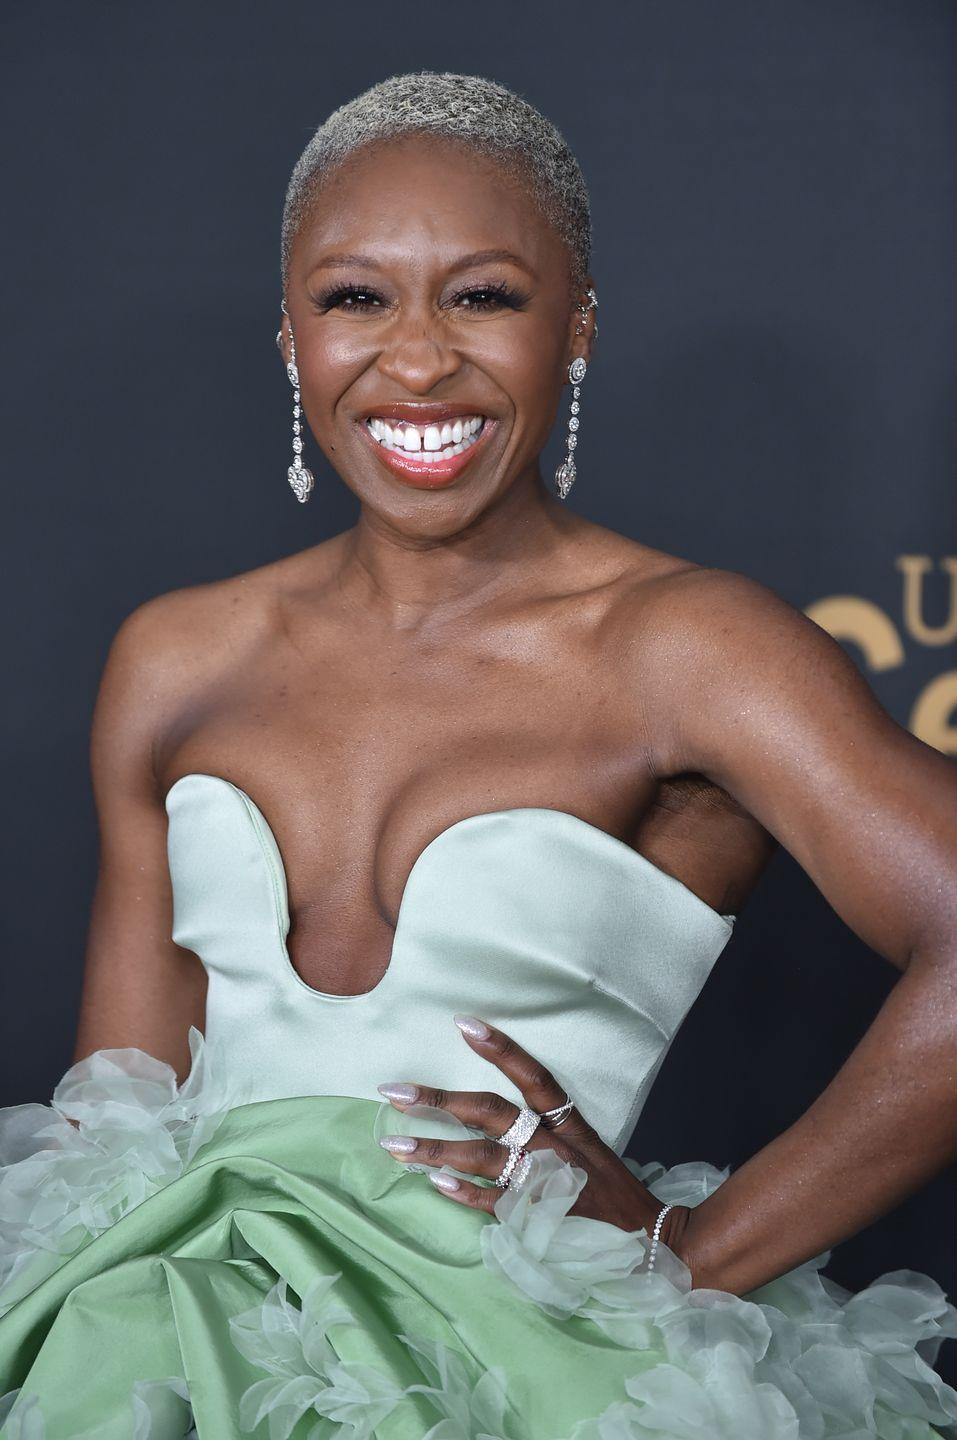 "<p><strong>Cynthia Erivo</strong> is one of our fave hair color chameleons, donning a silvery hued pixie cut that is truly stunning. </p><p><strong>RELATED: </strong><a href=""https://www.goodhousekeeping.com/beauty/hair/a46081/transitioning-from-color-to-gray-hair/"" rel=""nofollow noopener"" target=""_blank"" data-ylk=""slk:5 Things to Know Before You Transition Your Dyed Hair to Natural Gray"" class=""link rapid-noclick-resp"">5 Things to Know Before You Transition Your Dyed Hair to Natural Gray</a></p>"